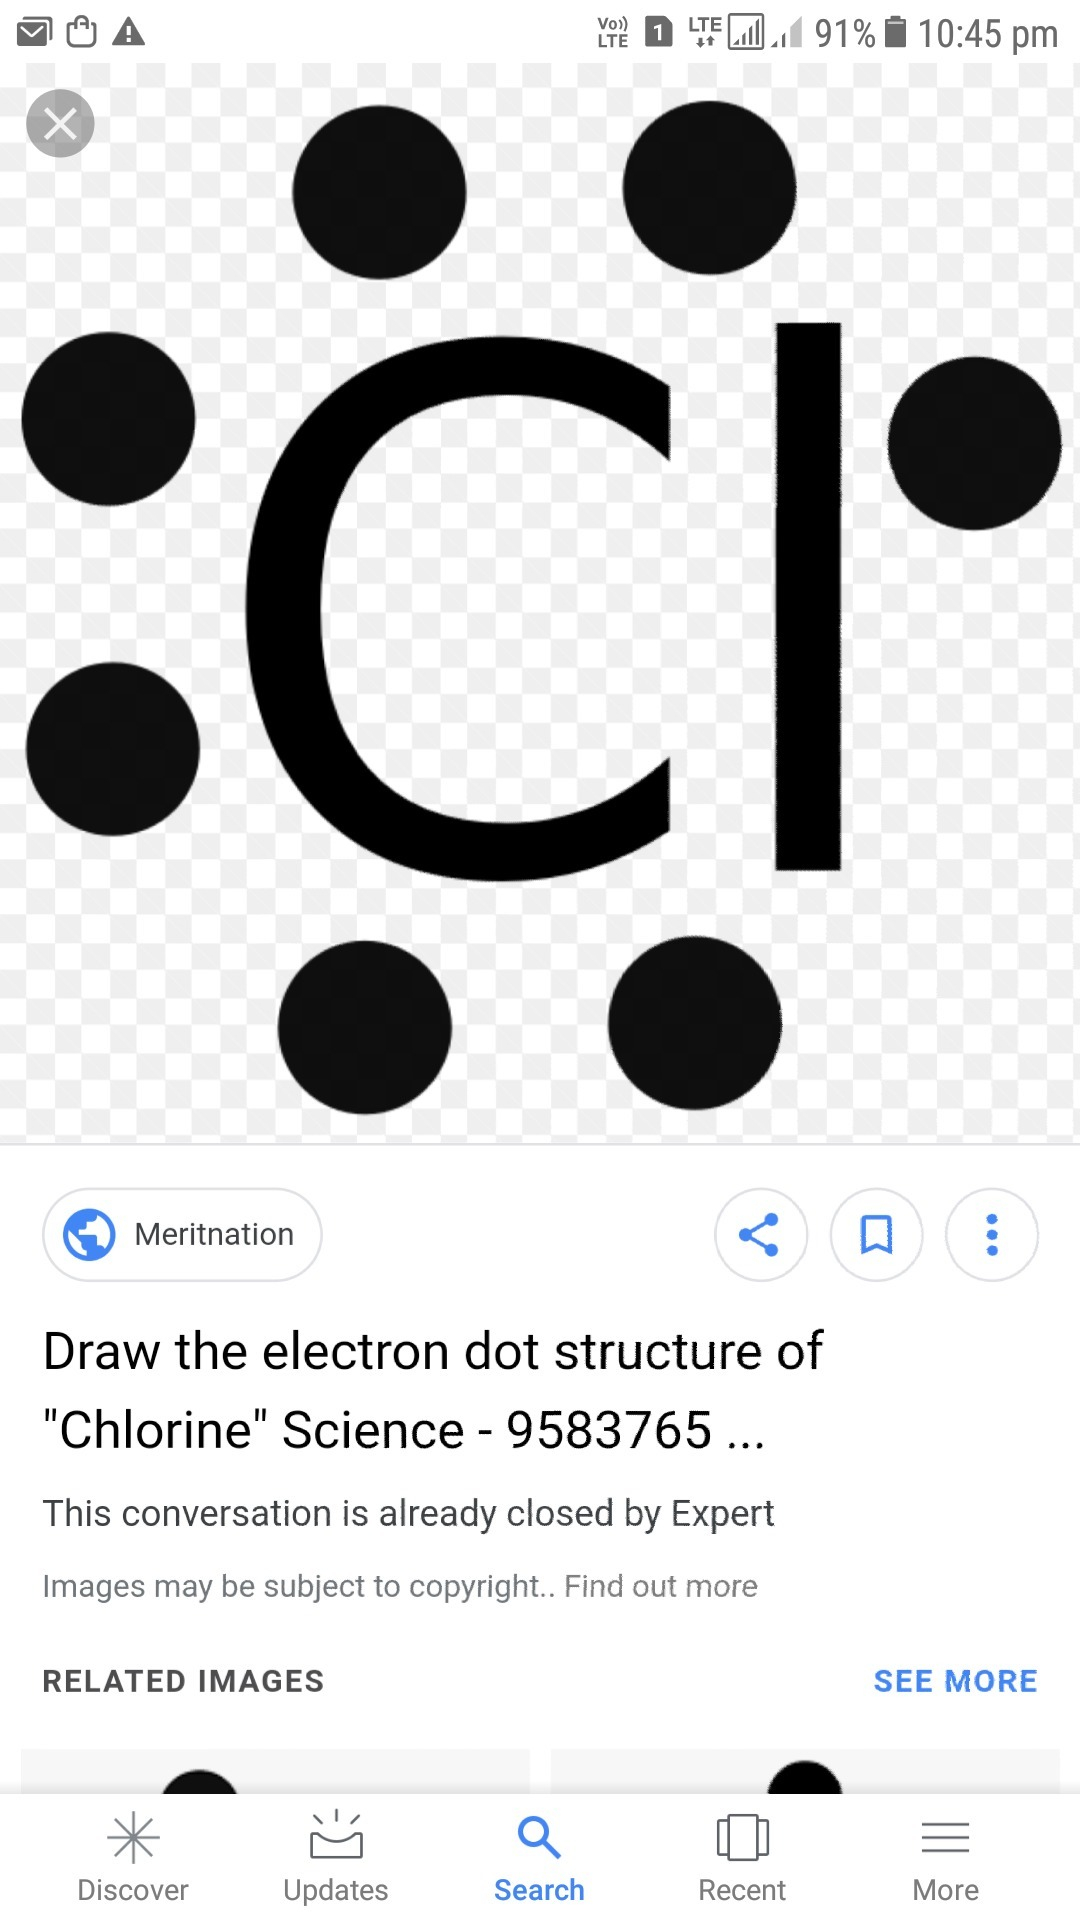 35 Lewis Dot Diagram For Chlorine